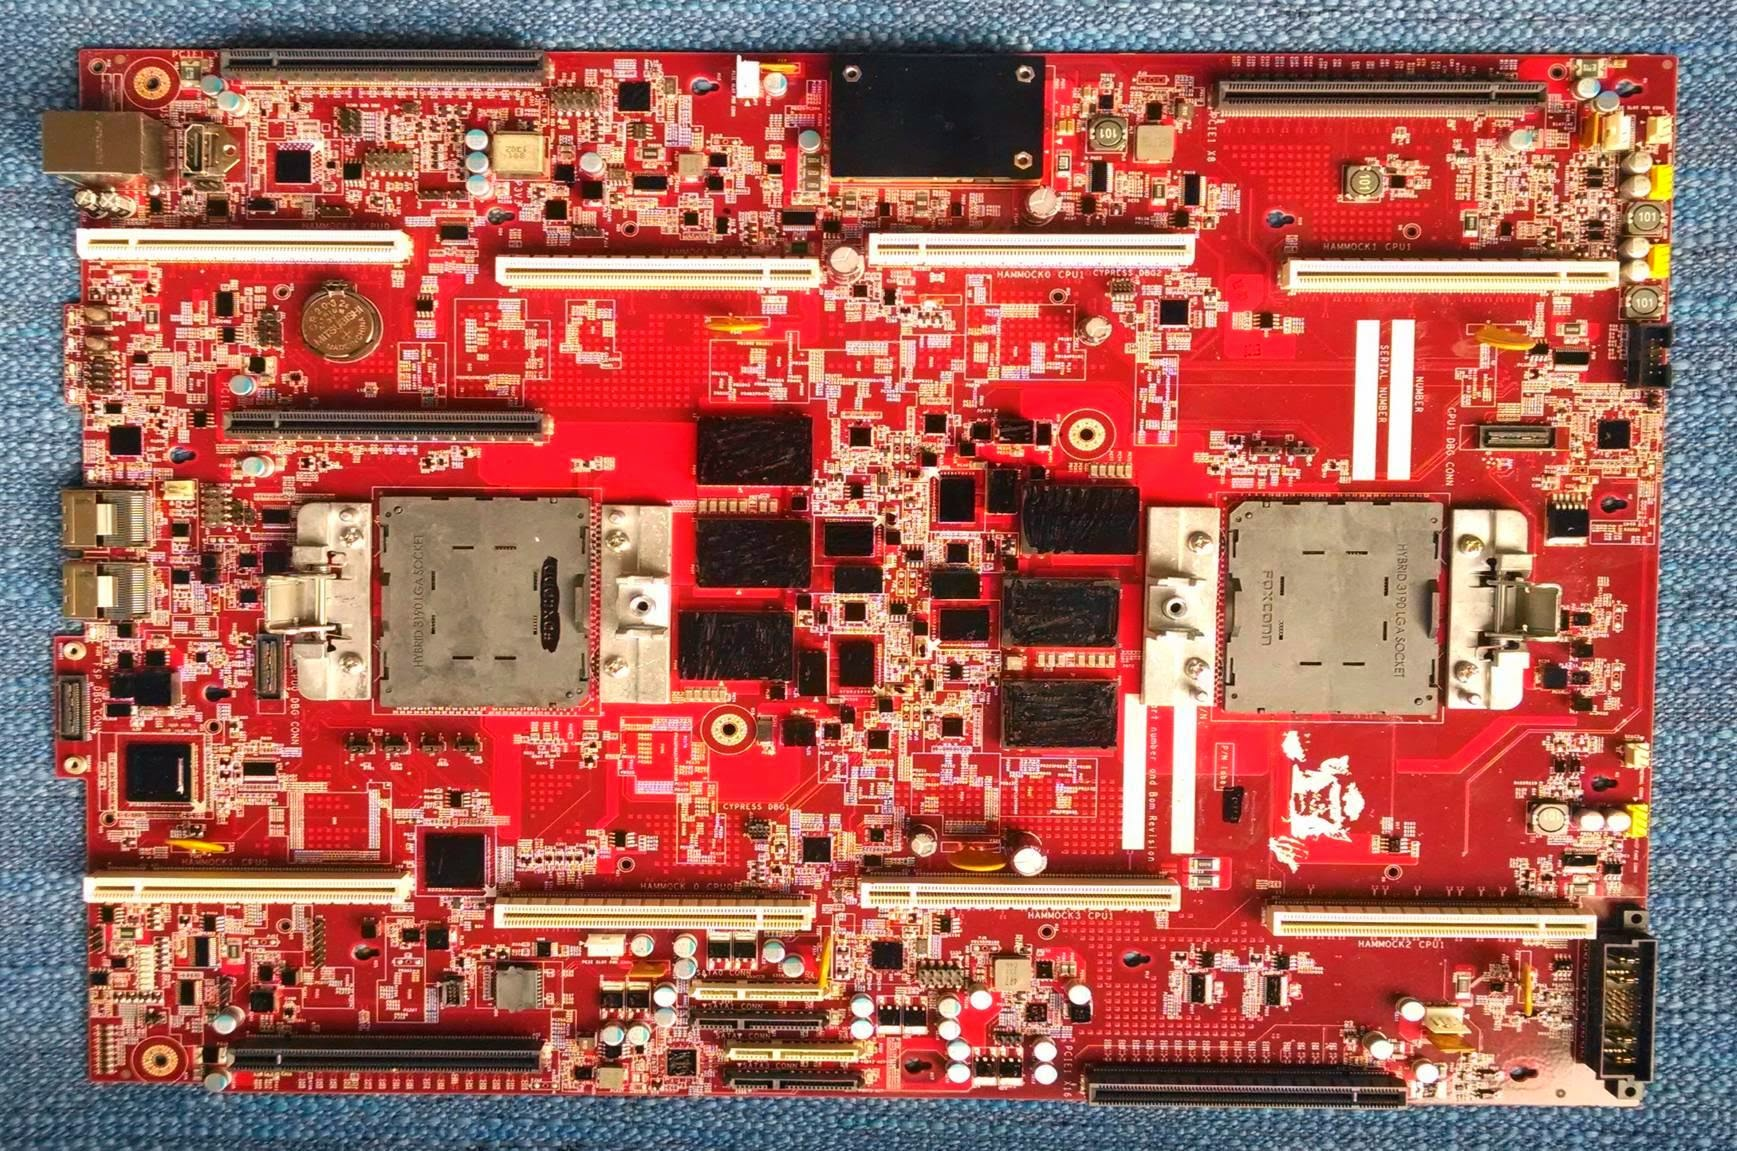 A Google server motherboard built to use IBM's Power8 processor.